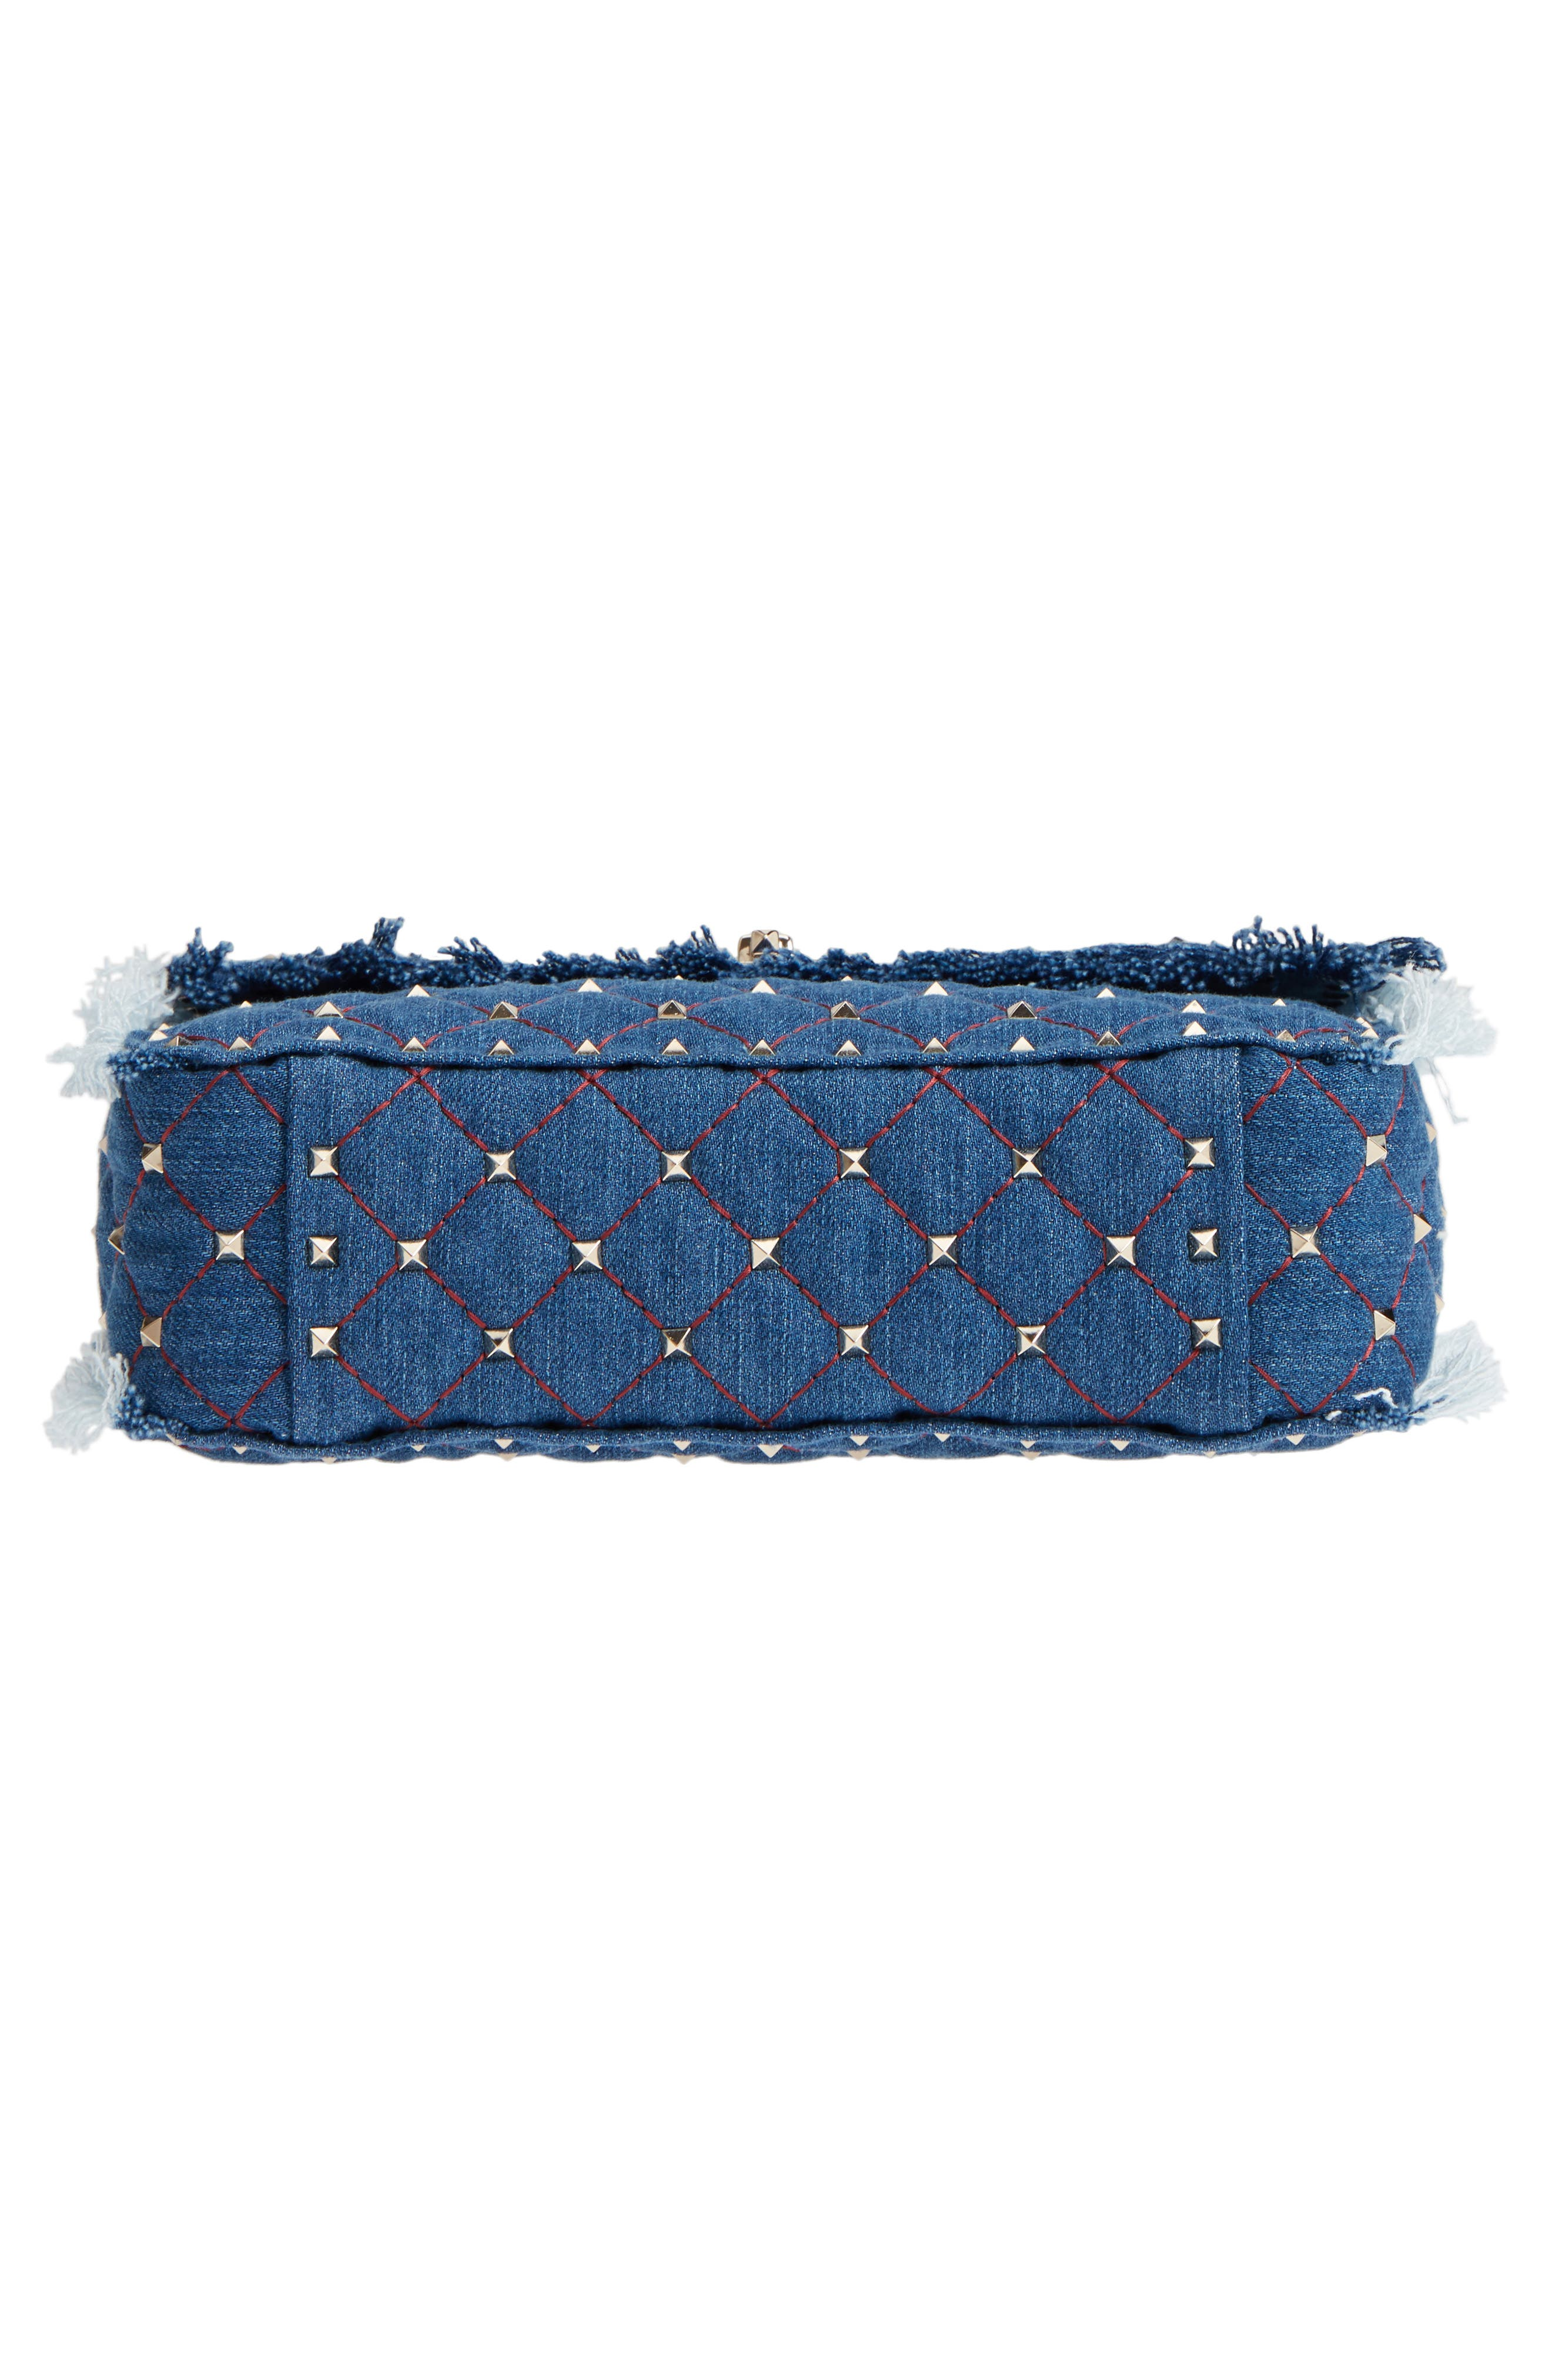 Rockstud Spike Medium Shoulder Bag,                             Alternate thumbnail 6, color,                             DENIM